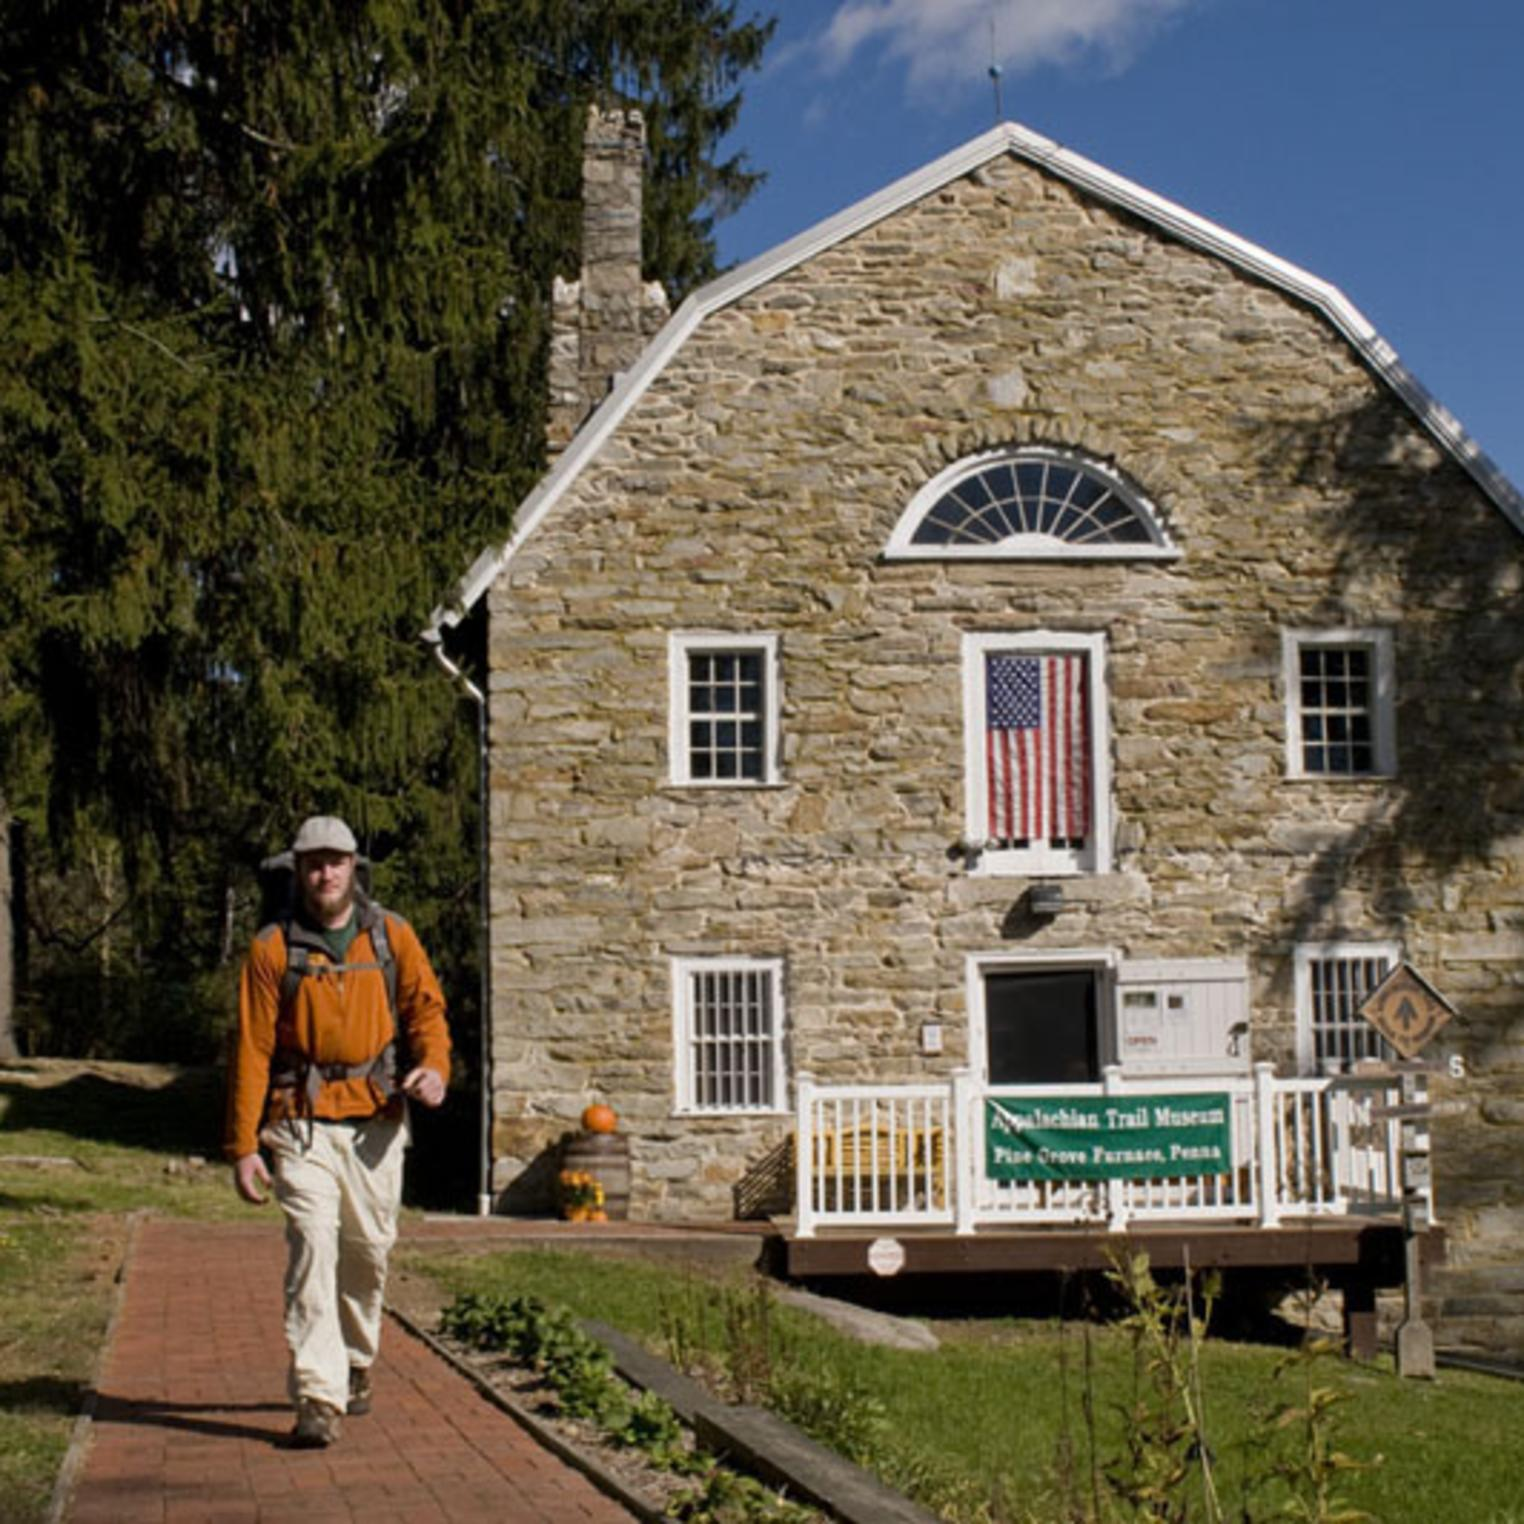 Hiker outside the Appalachian Trail Museum